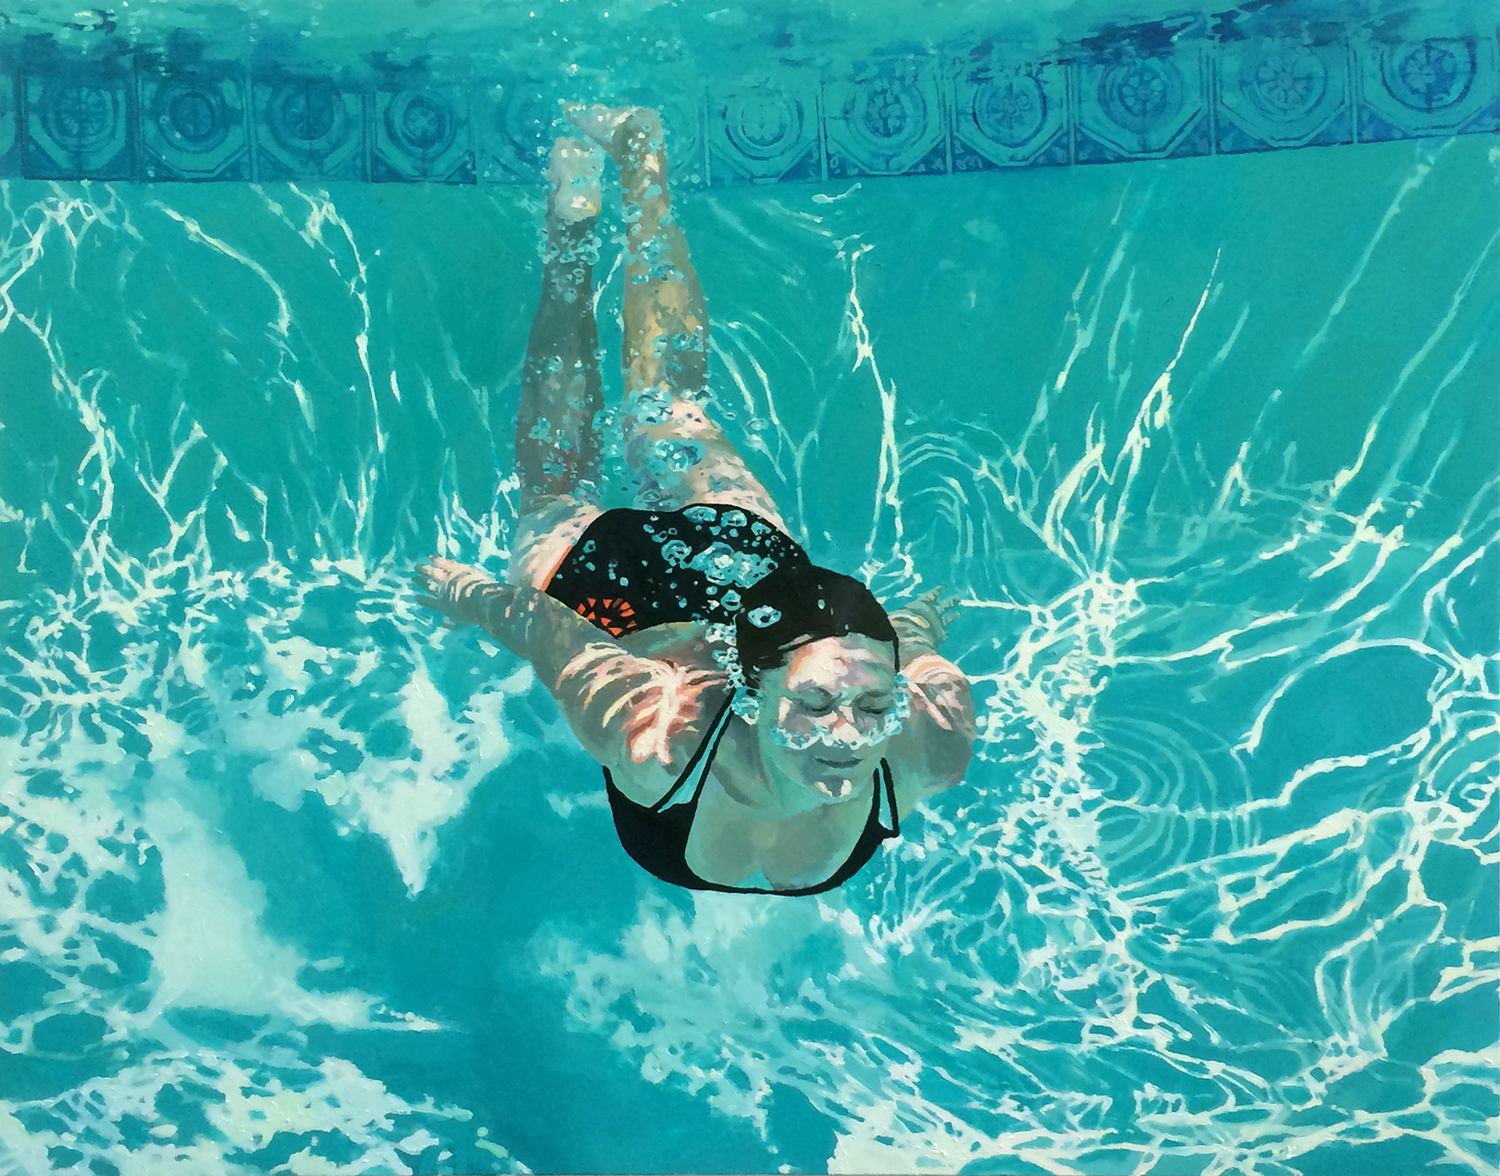 Drawing Swimming Pools : Amazing painting by samantha french artpeople